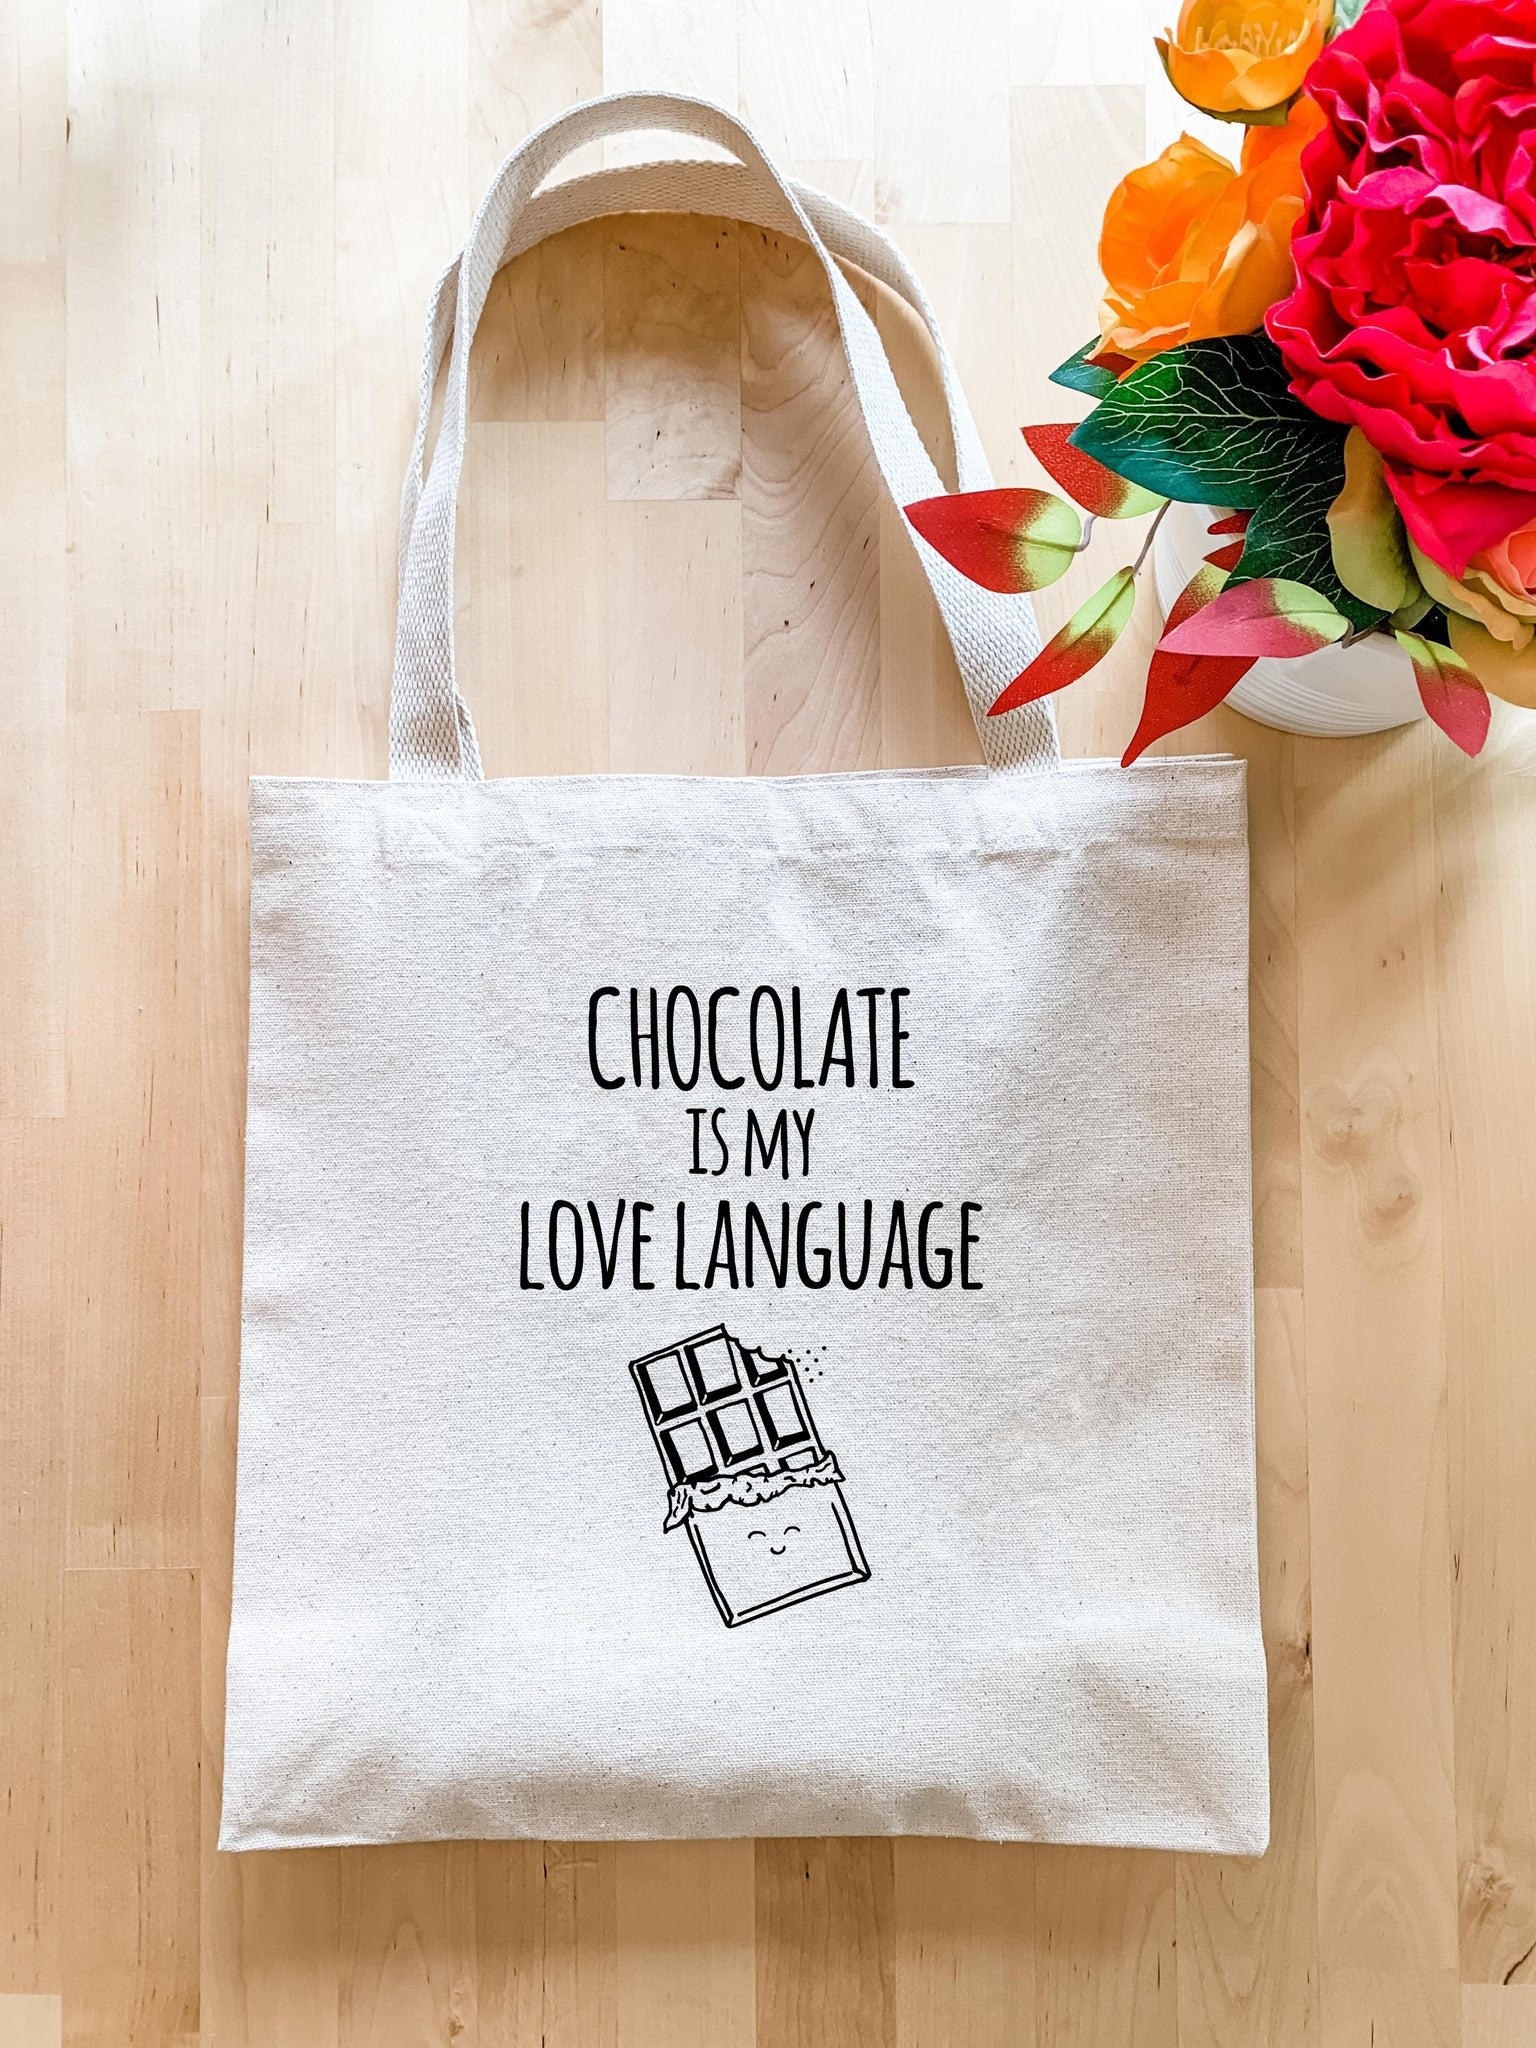 Chocolate is my Love Language - Tote Bag - MoonlightMakers